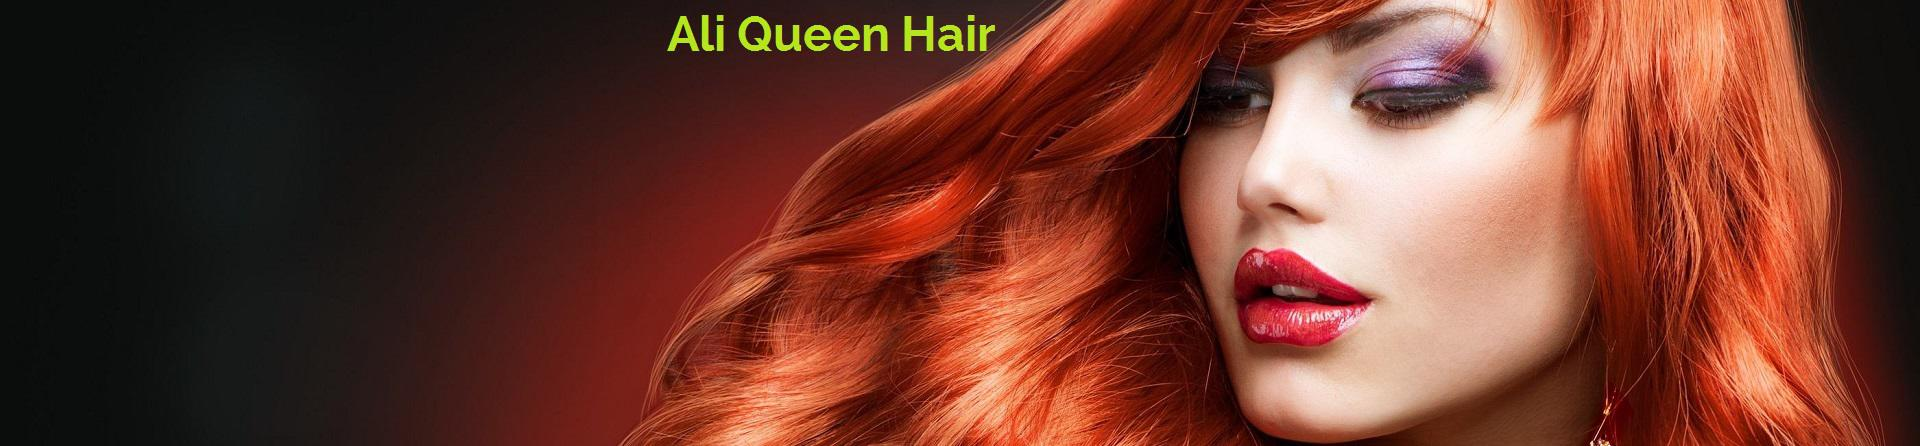 Ali Queen Hair products a la une sur avis-express